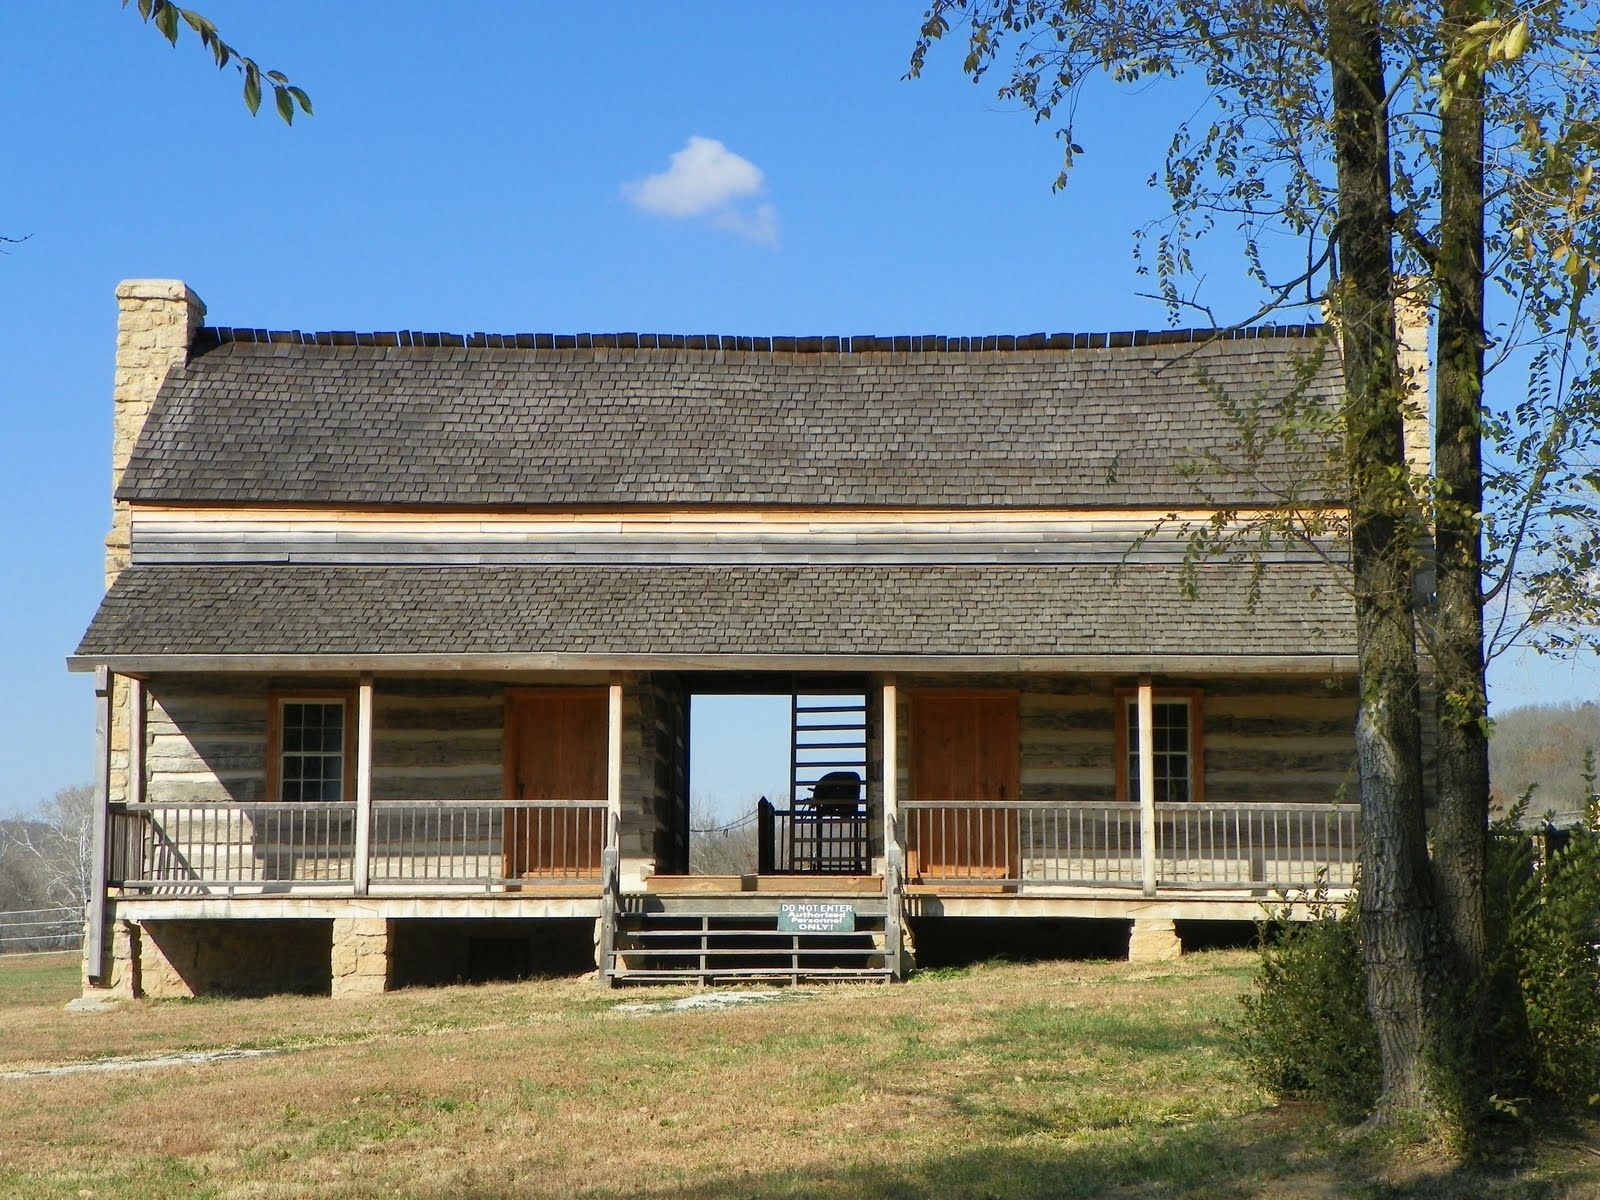 daniel boone home and boonefield village